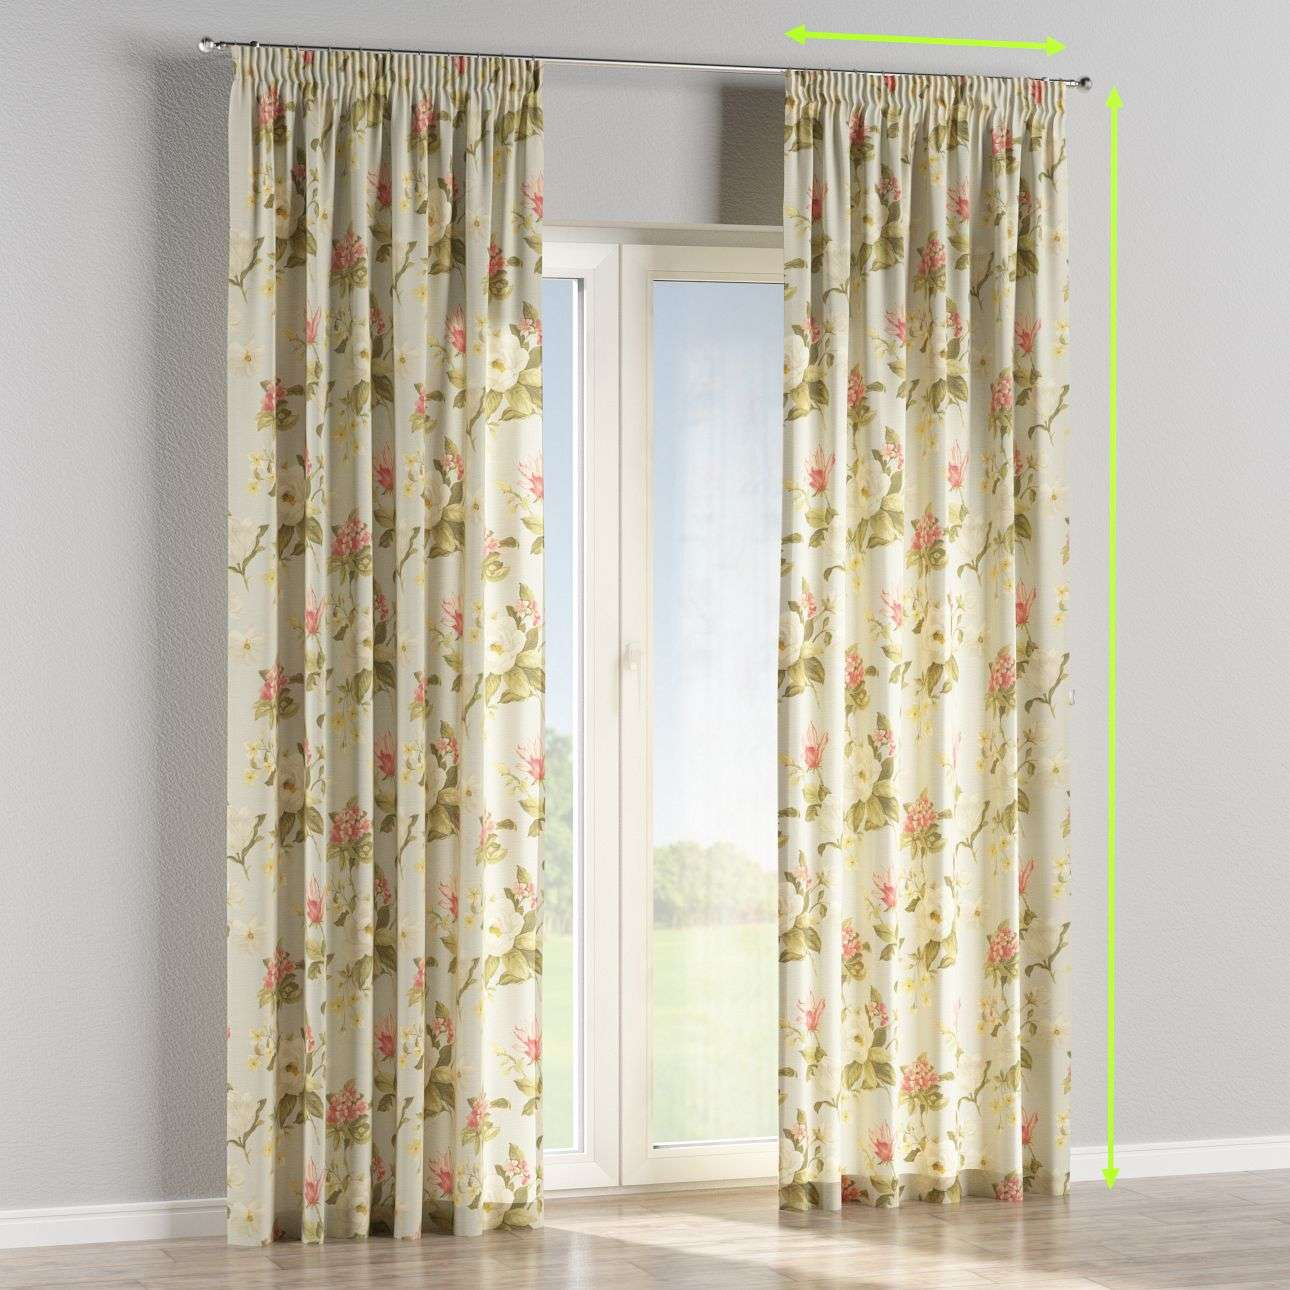 Pencil pleat lined curtains in collection Londres, fabric: 123-65